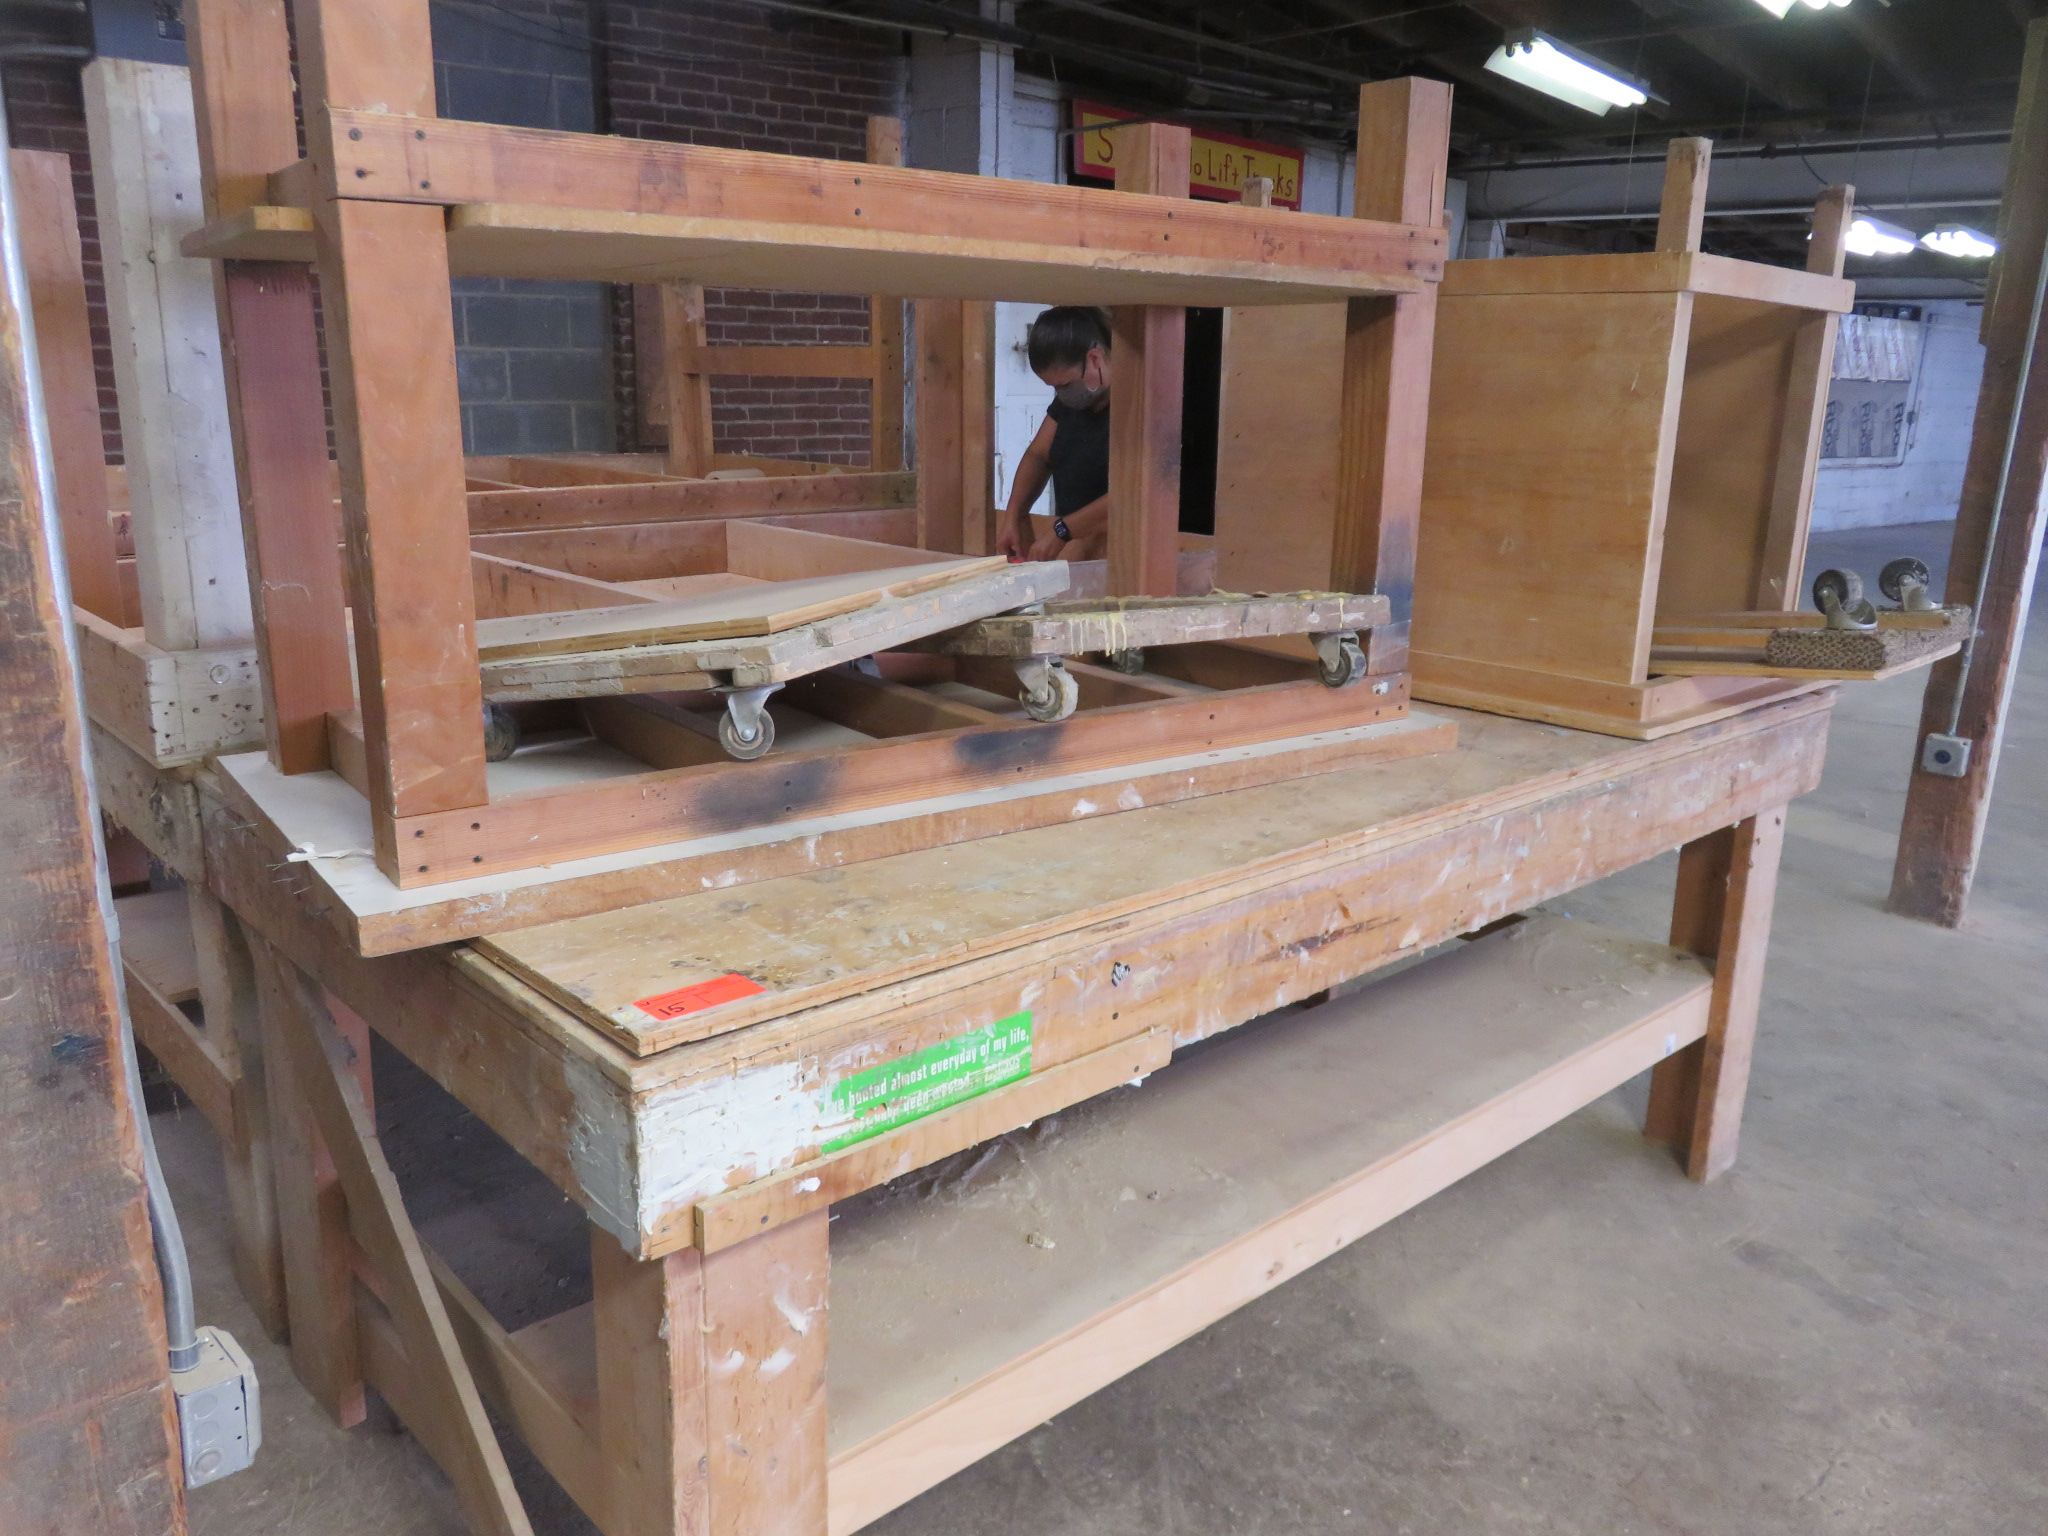 """Heavy Duty Wooden Work Tables Lot of 3 approx 96""""x 48""""x 36, 38""""x 32""""x 34"""" 60""""x 28""""x 36"""" - Image 3 of 4"""